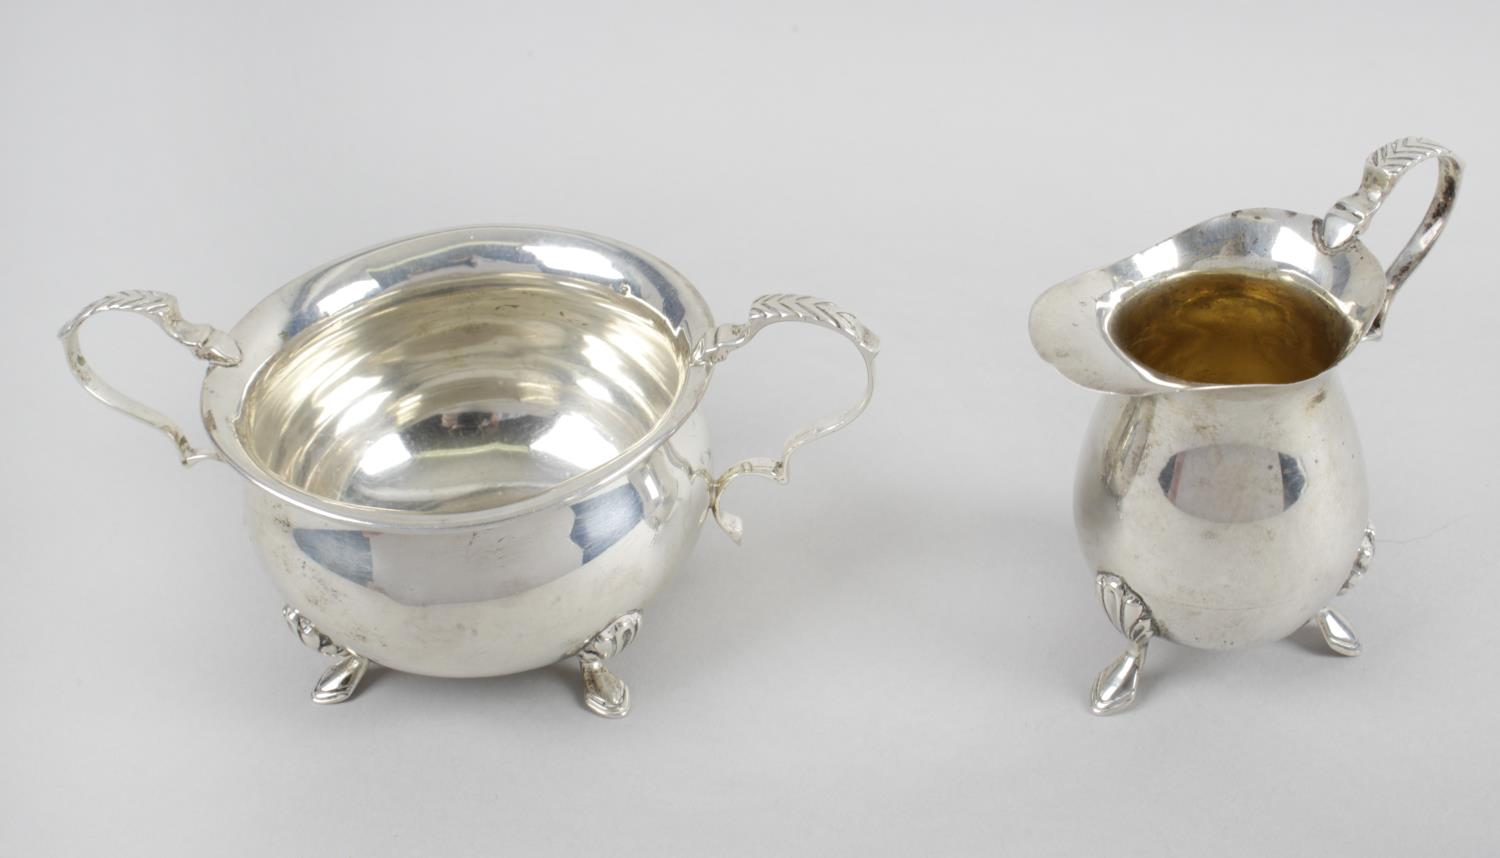 Lot 21 - An Edwardian silver twin-handled sugar bowl and matching cream jug,